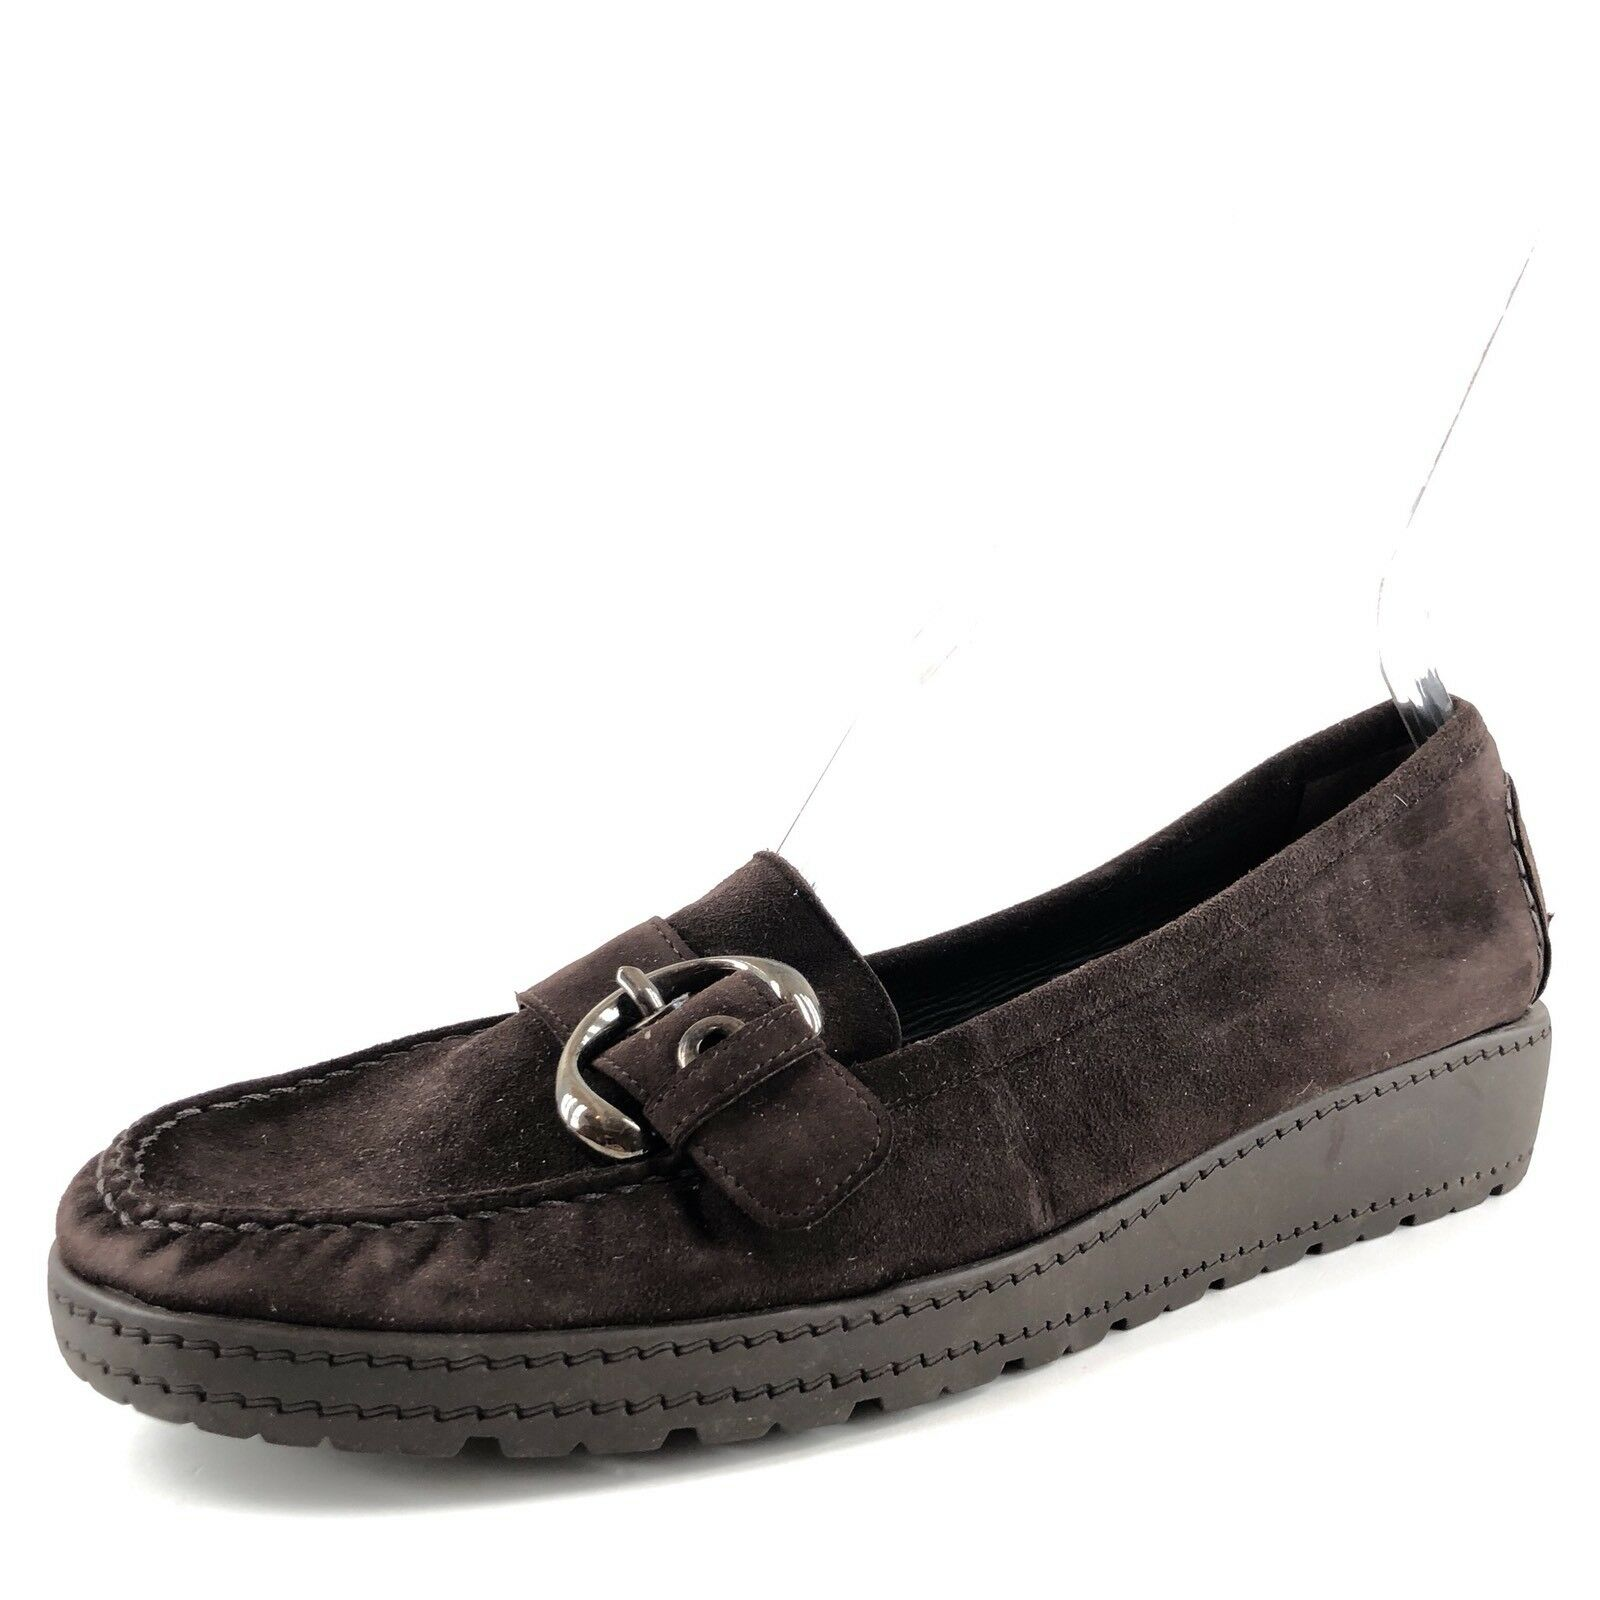 Stuart Weitzman Brown Suede Wedge Buckle Loafers Donna Size 11 M